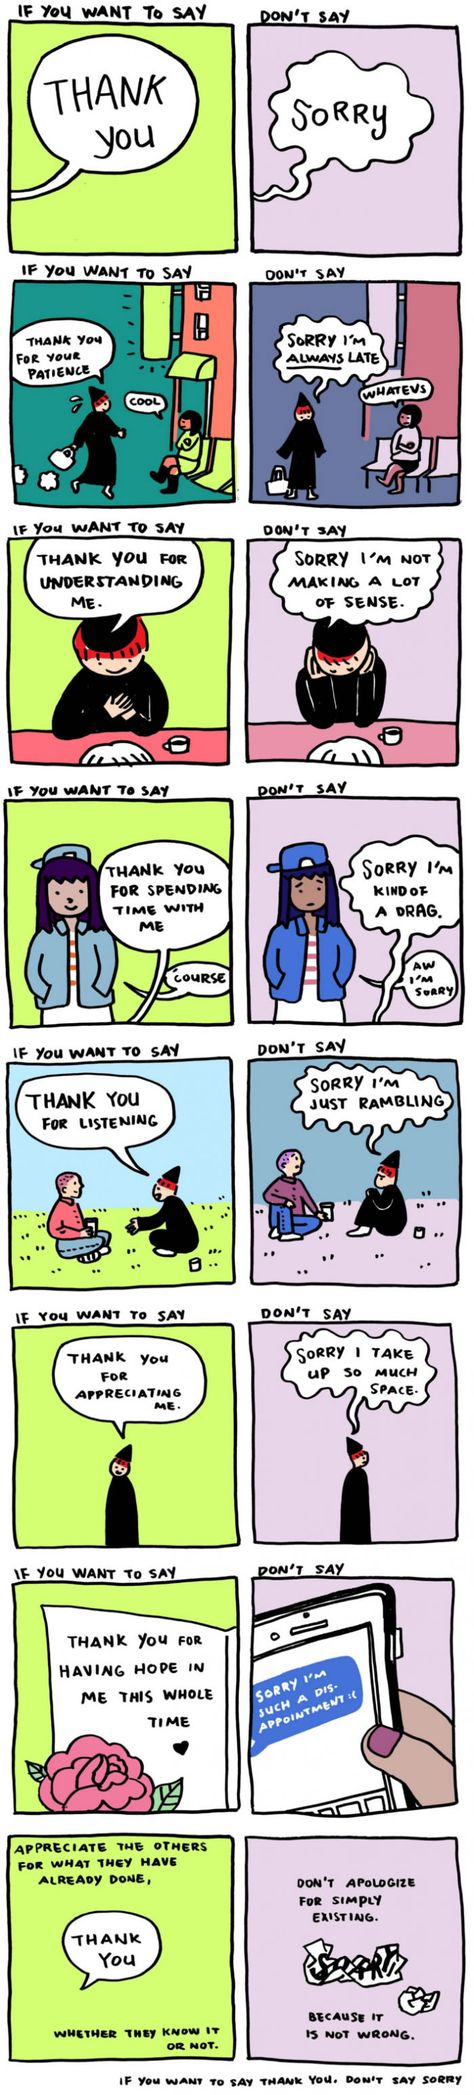 """A comic for people who say """"I'm sorry"""" too often<<<I need to remember this because I apologize for things I probably shouldn't"""